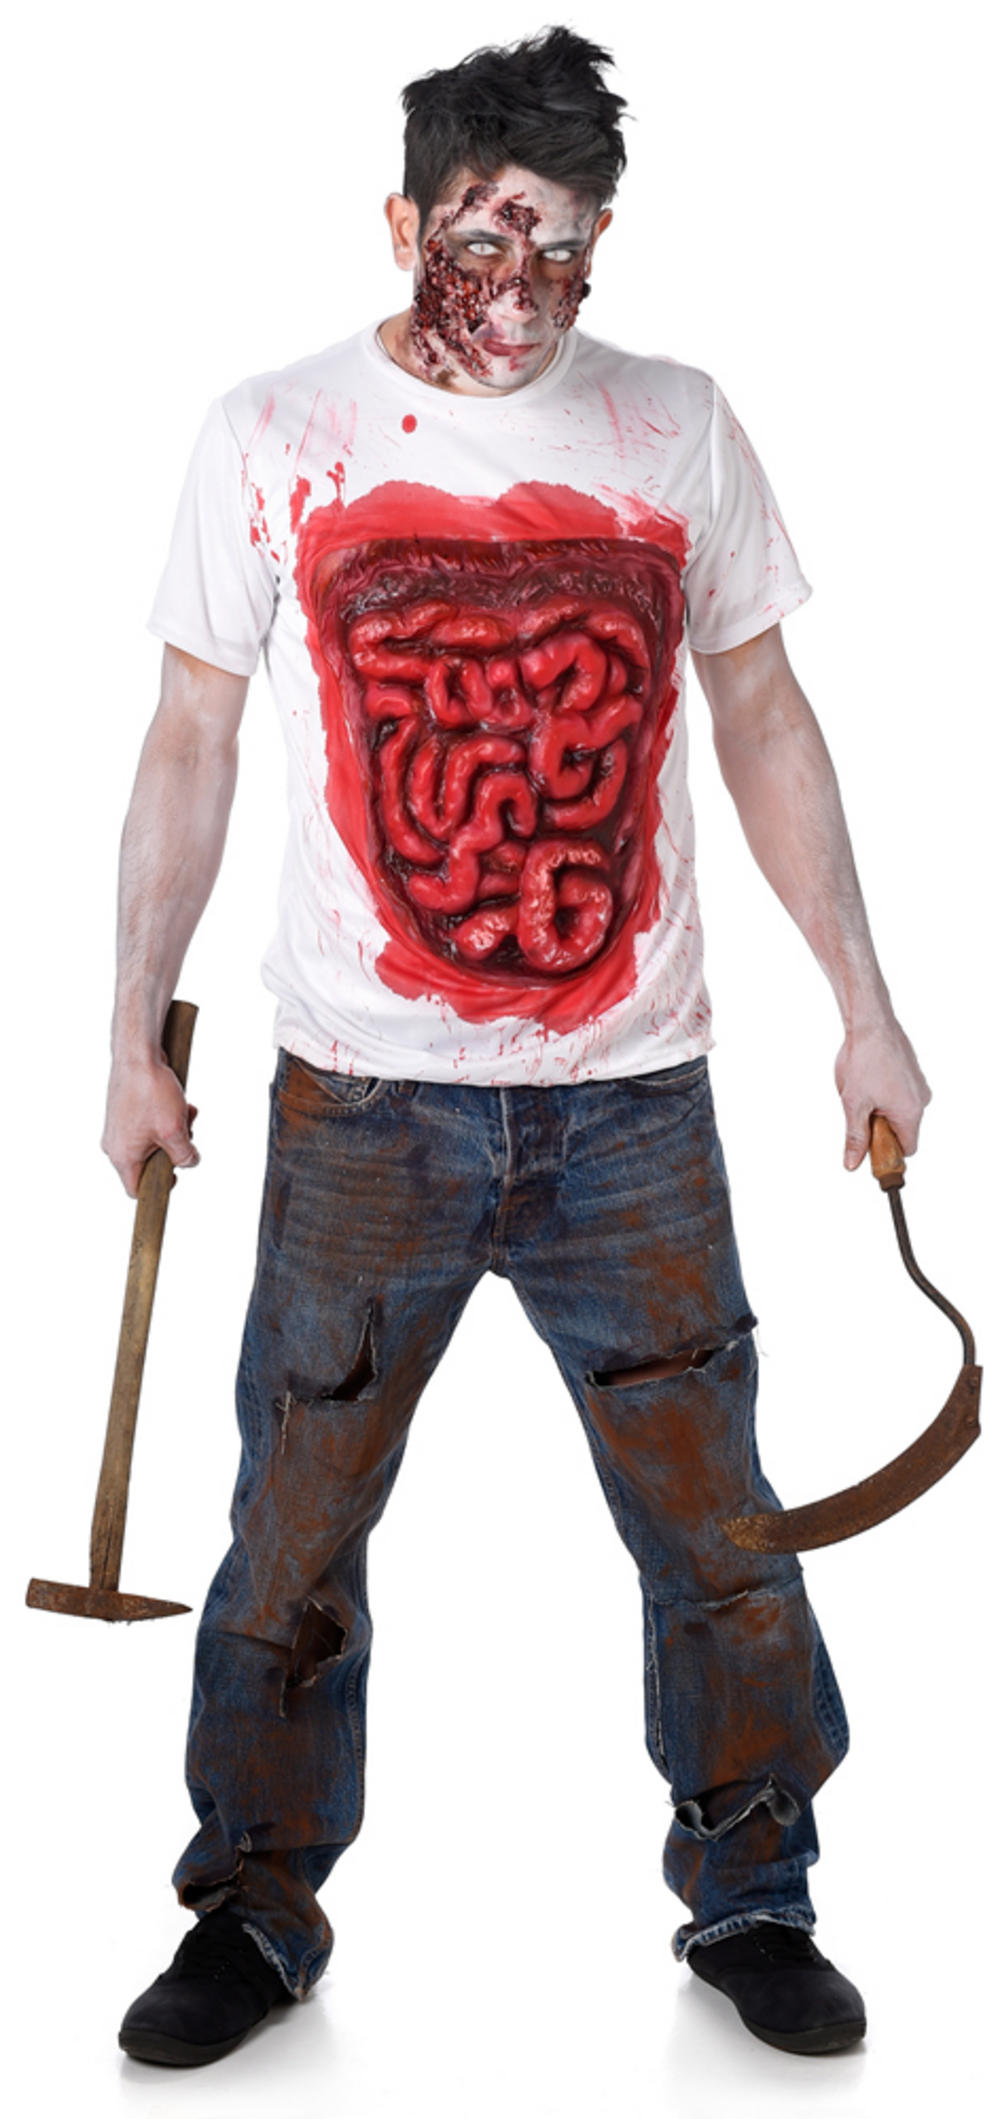 Guts Body Part Zombie Mens Costume Shirt